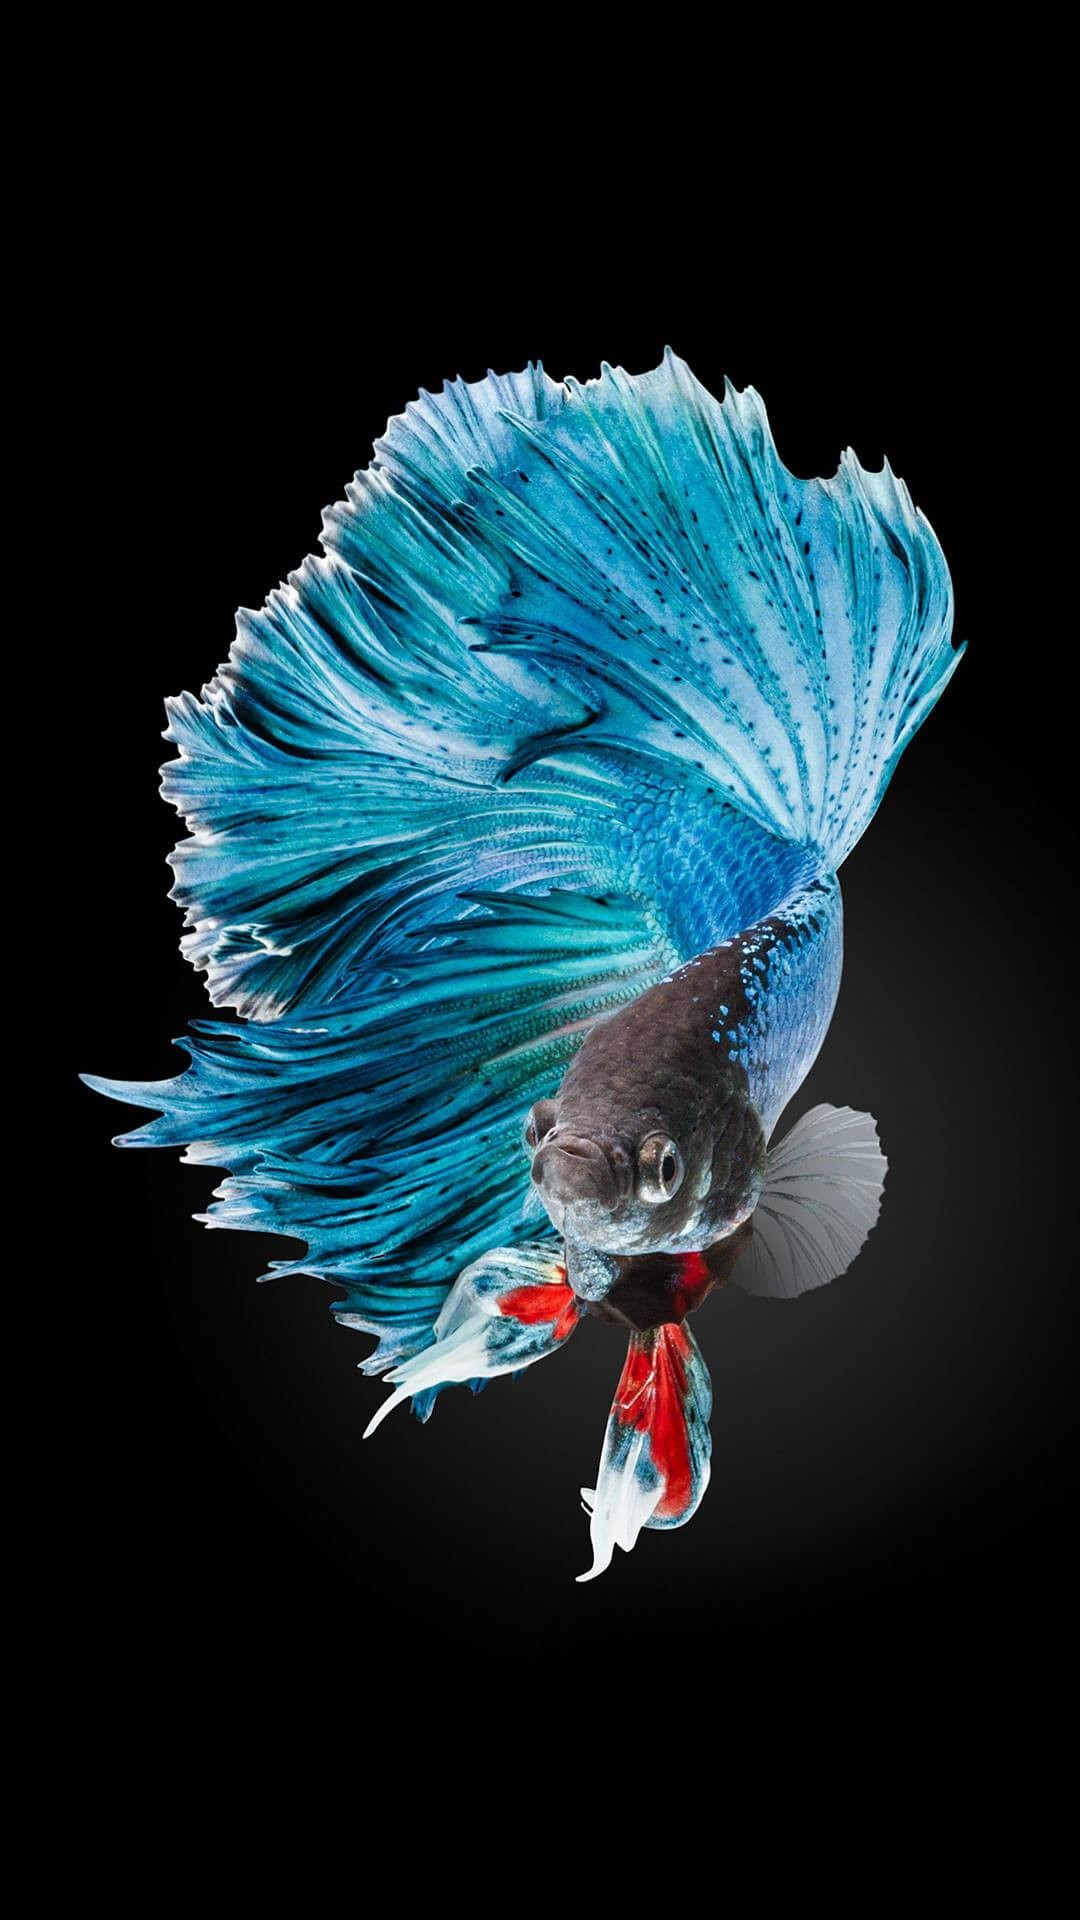 1080x1920 Wallpaper iphone live - Betta Fish Images Iphone 6 And Iphone 6s. Download